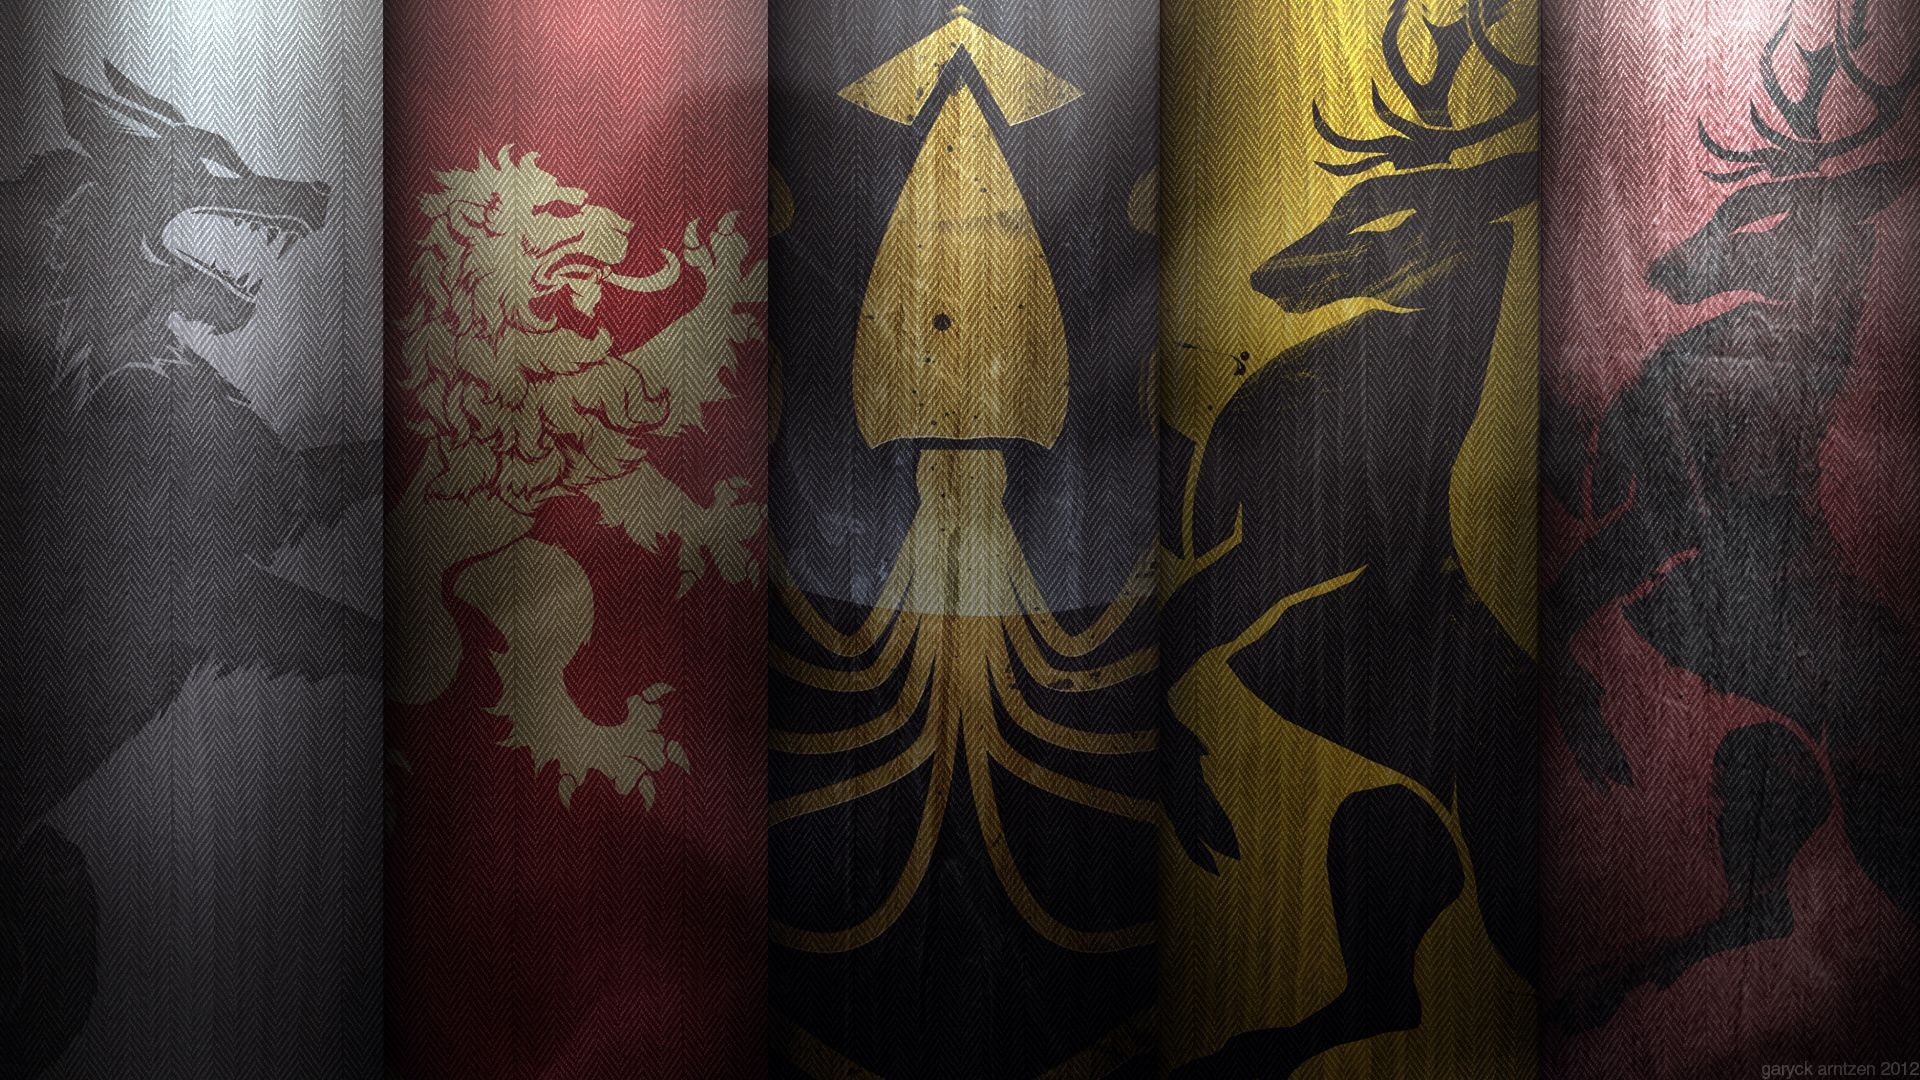 Game of Thrones Wallpaper 1080p Game of thrones